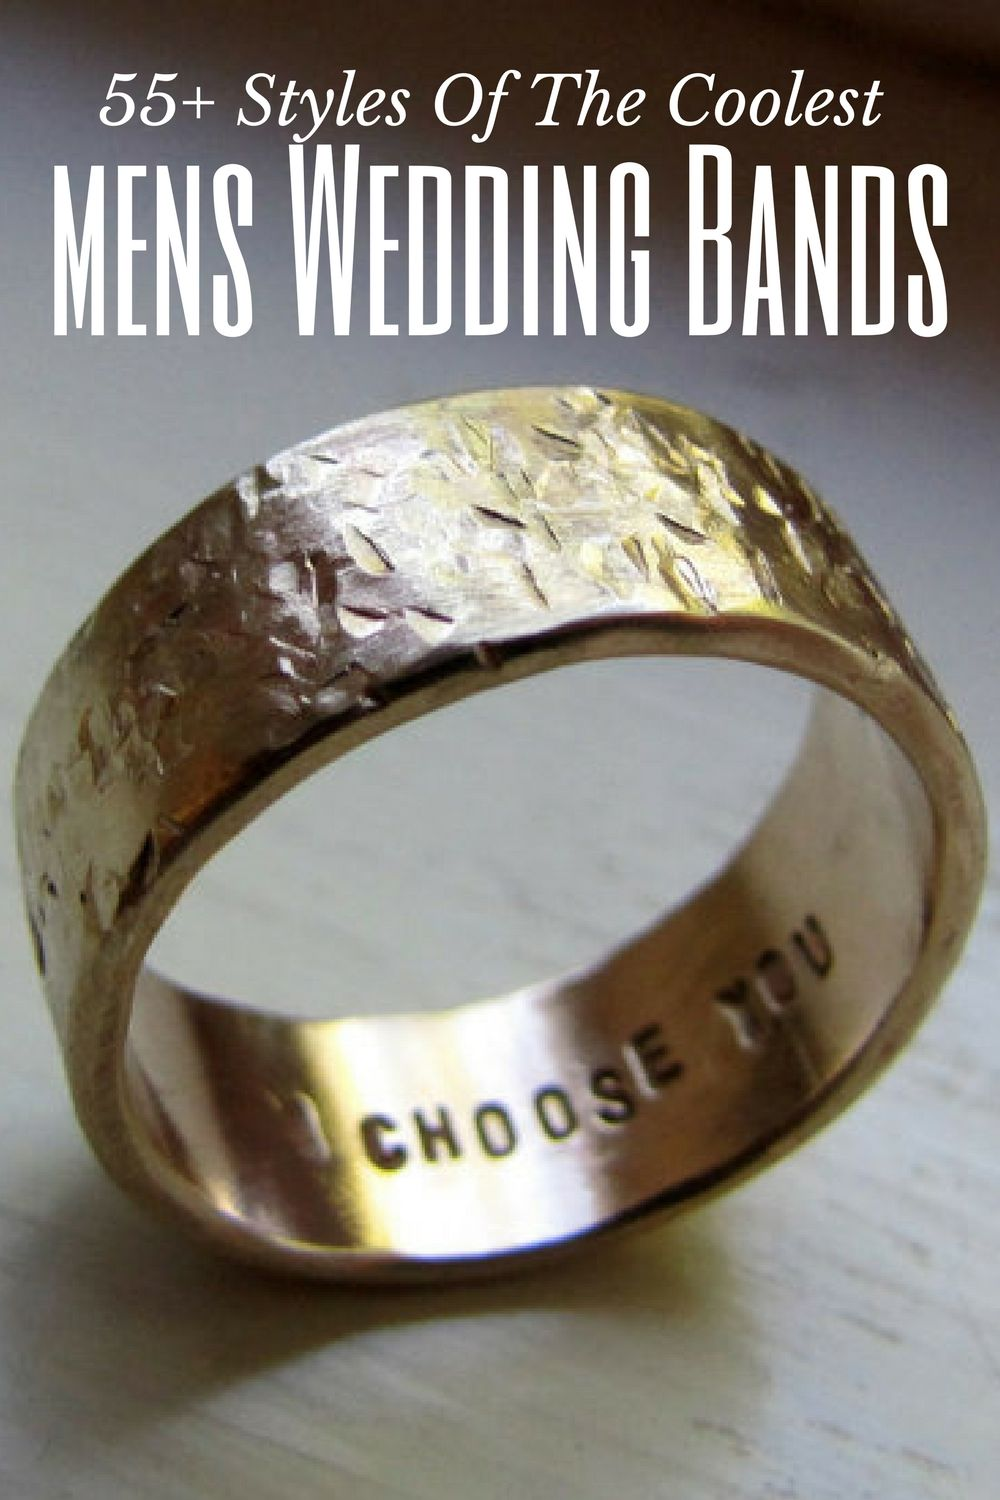 52 Stylish Unique Mens Wedding Bands For 2020 Mens Wedding Bands Unique Wedding Rings Unique Beautiful Wedding Rings